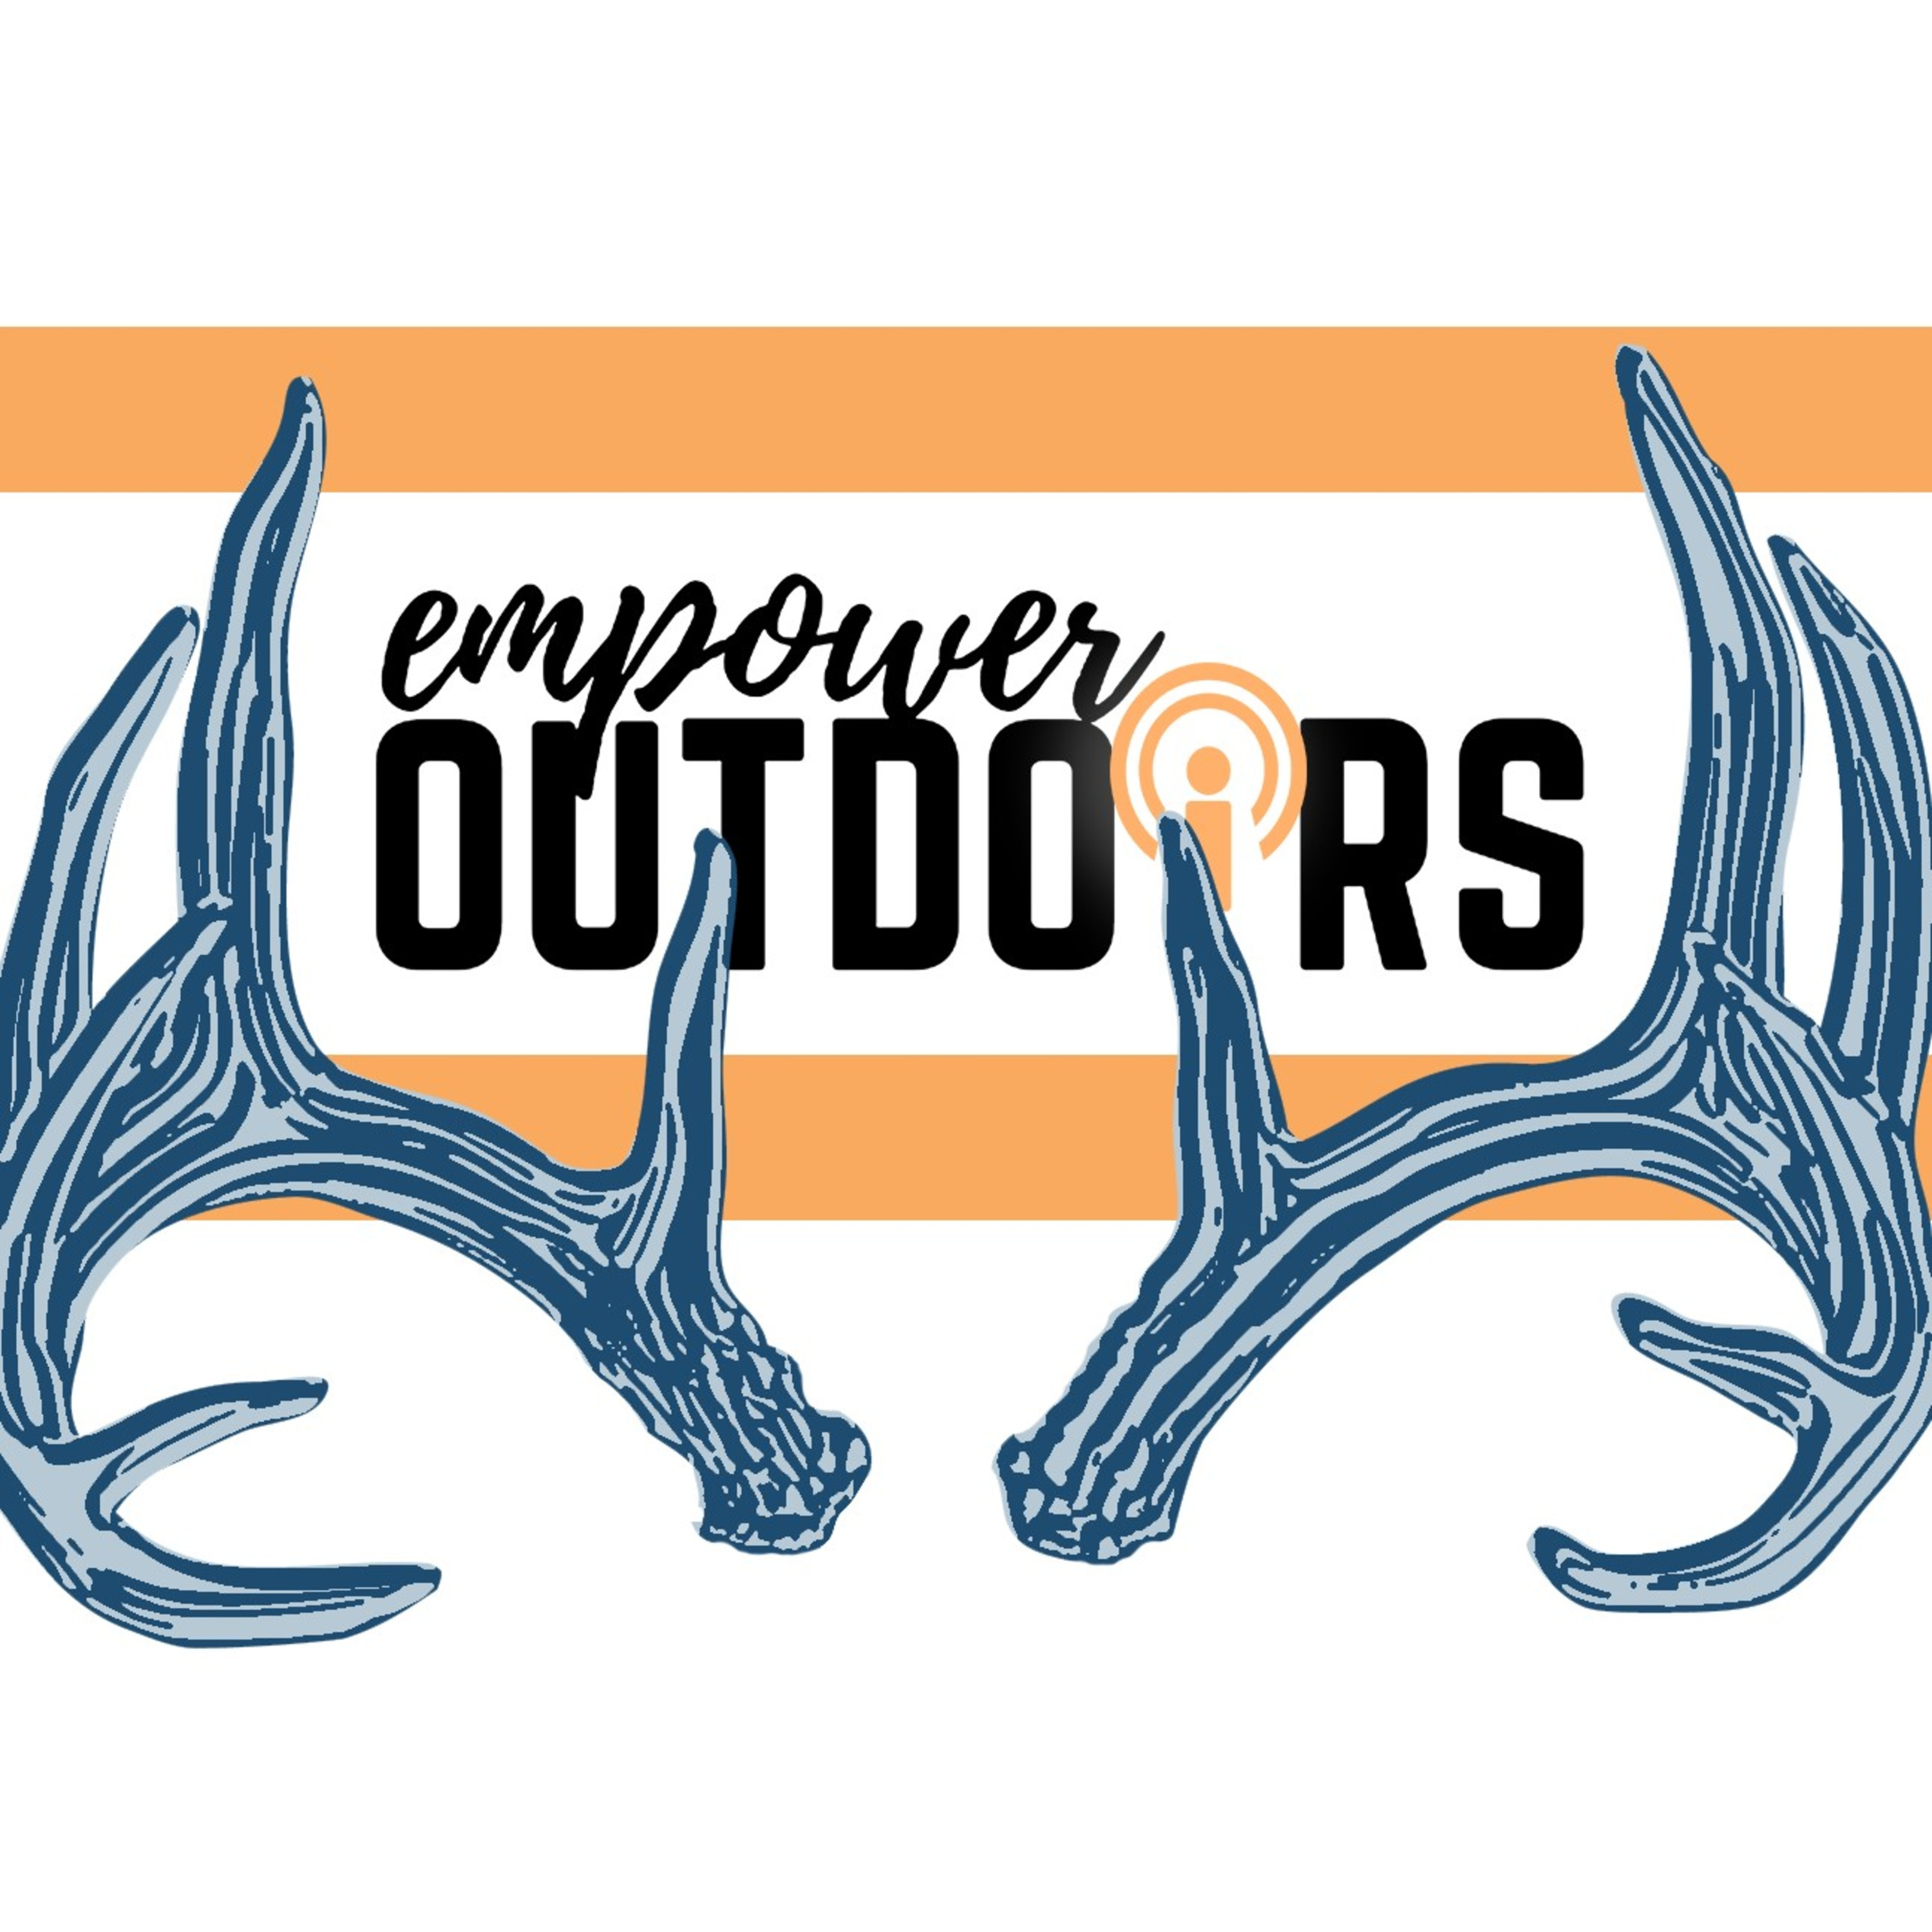 Ep. 23: Empower Outdoors 1 Year Anniversary!